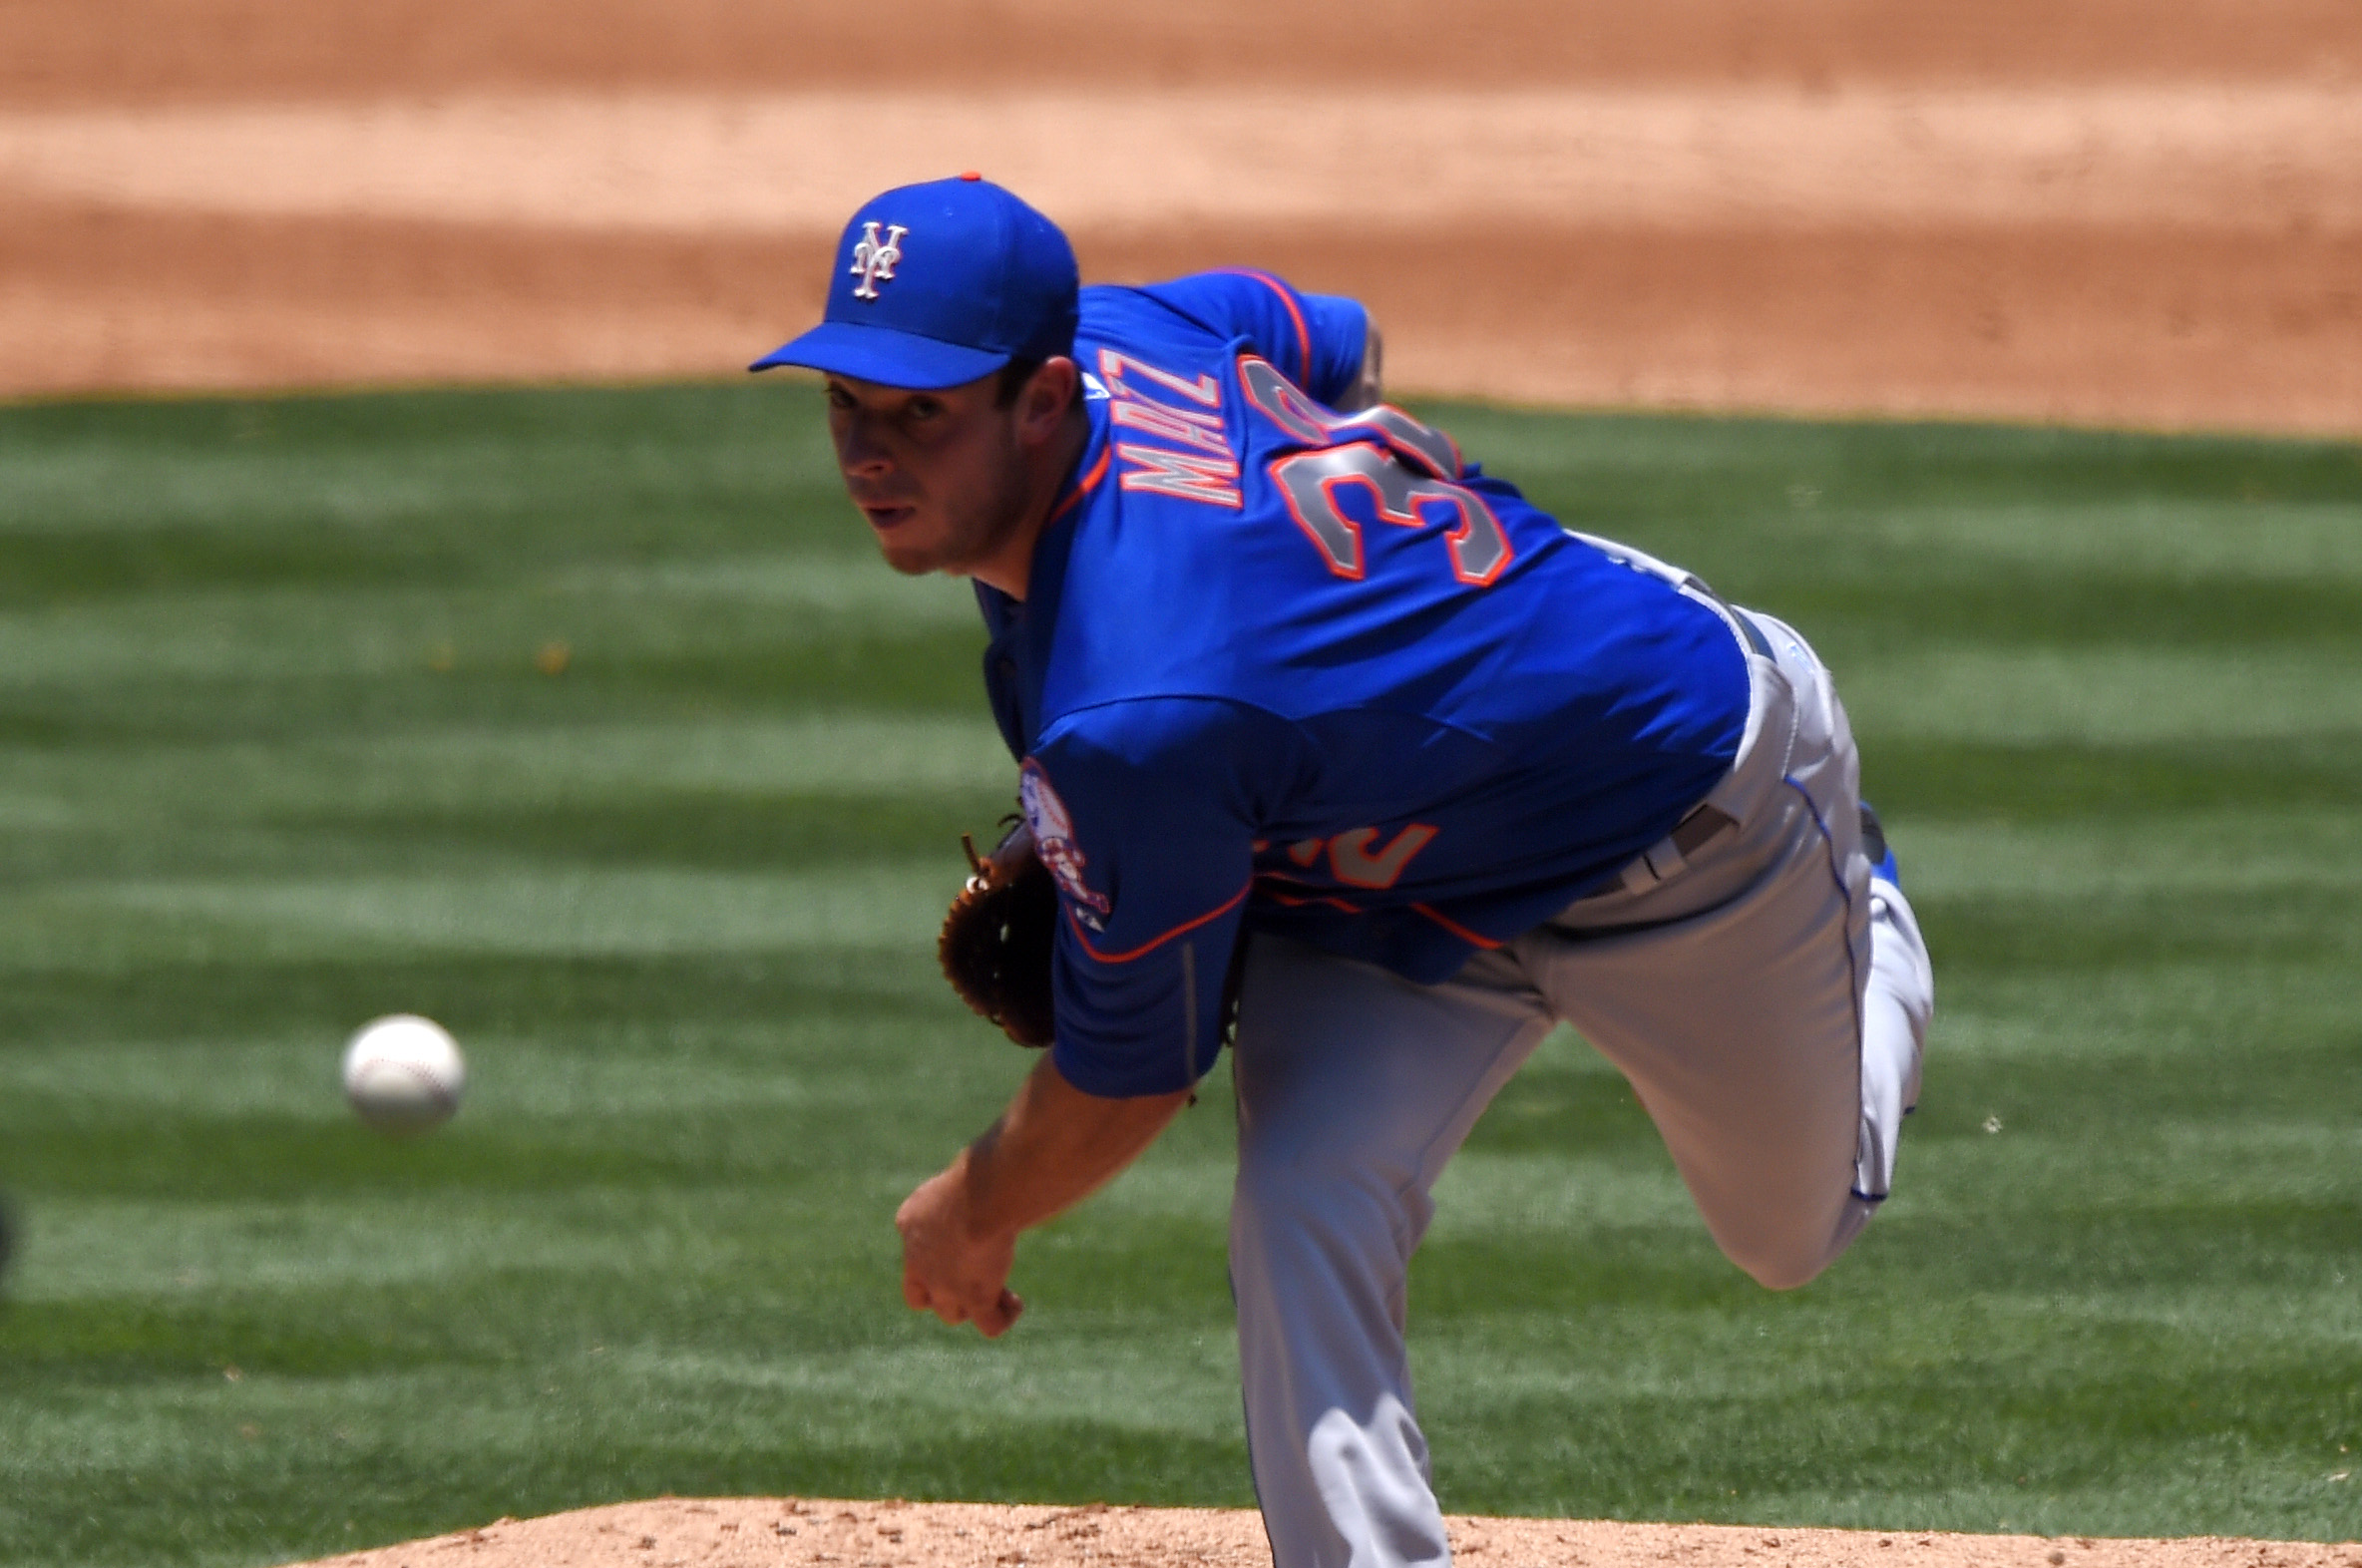 New York Mets starting pitcher Steven Matz throws to the plate during the second inning of a baseball game against the Los Angeles Dodgers, Sunday, July 5, 2015, in Los Angeles. (AP Photo/Mark J. Terrill)